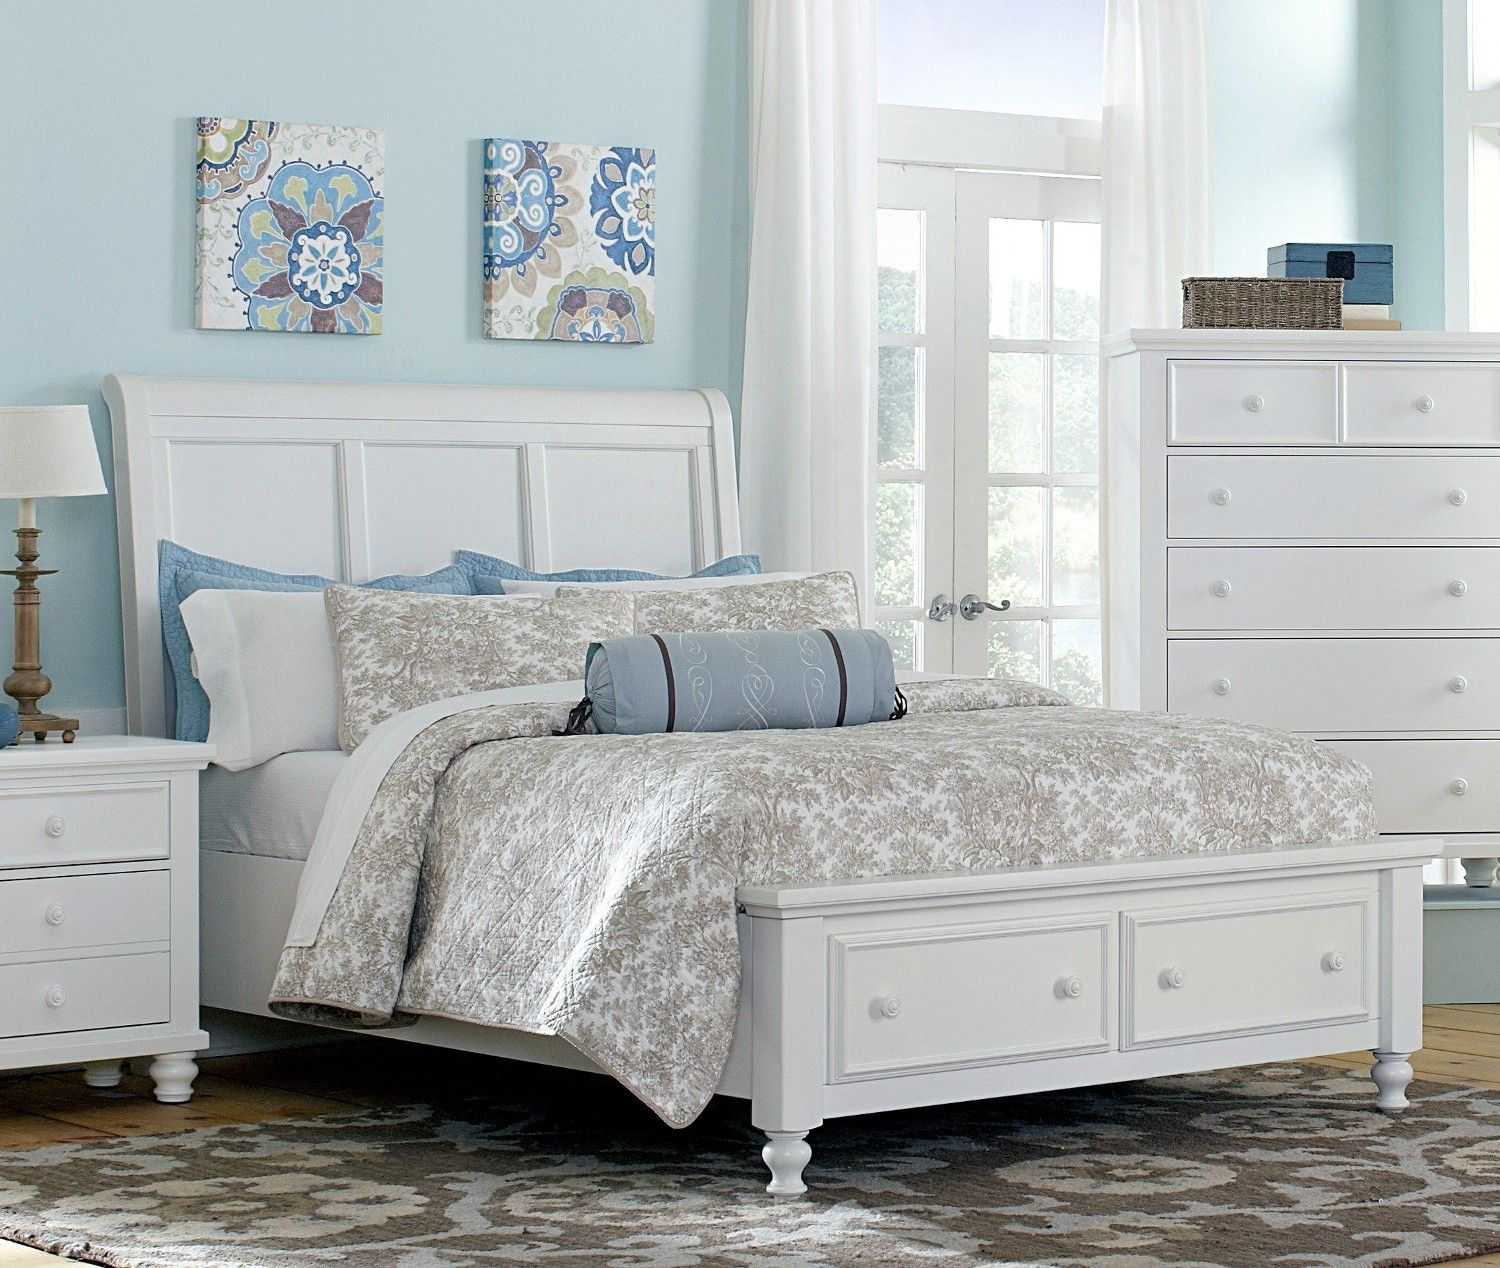 white wood sleigh beds furniture bedroom furniture sleigh bed white queen sleigh bed - White Wood Bedroom Furniture